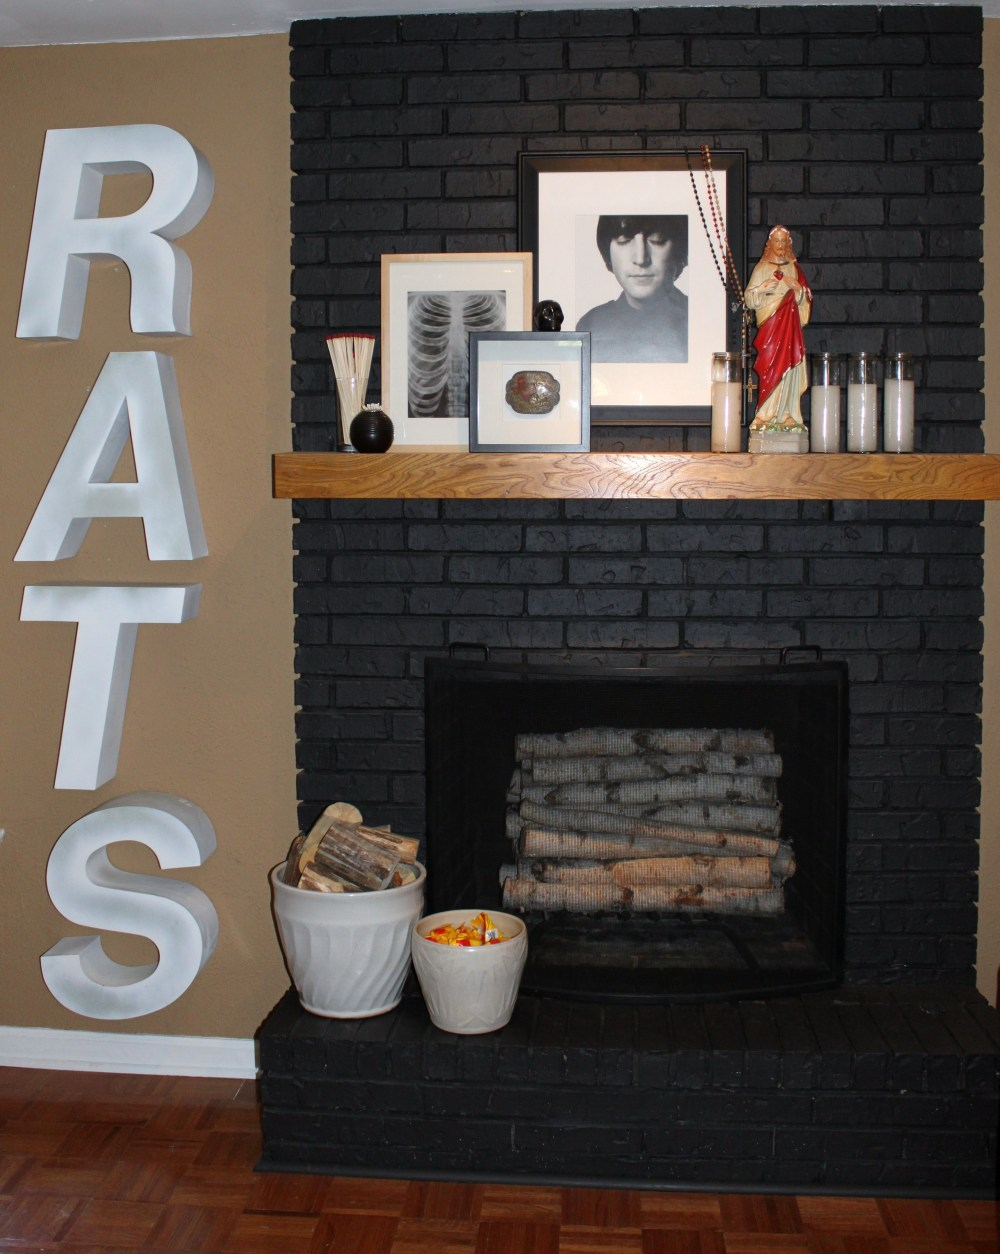 Rats Next to the Mantle